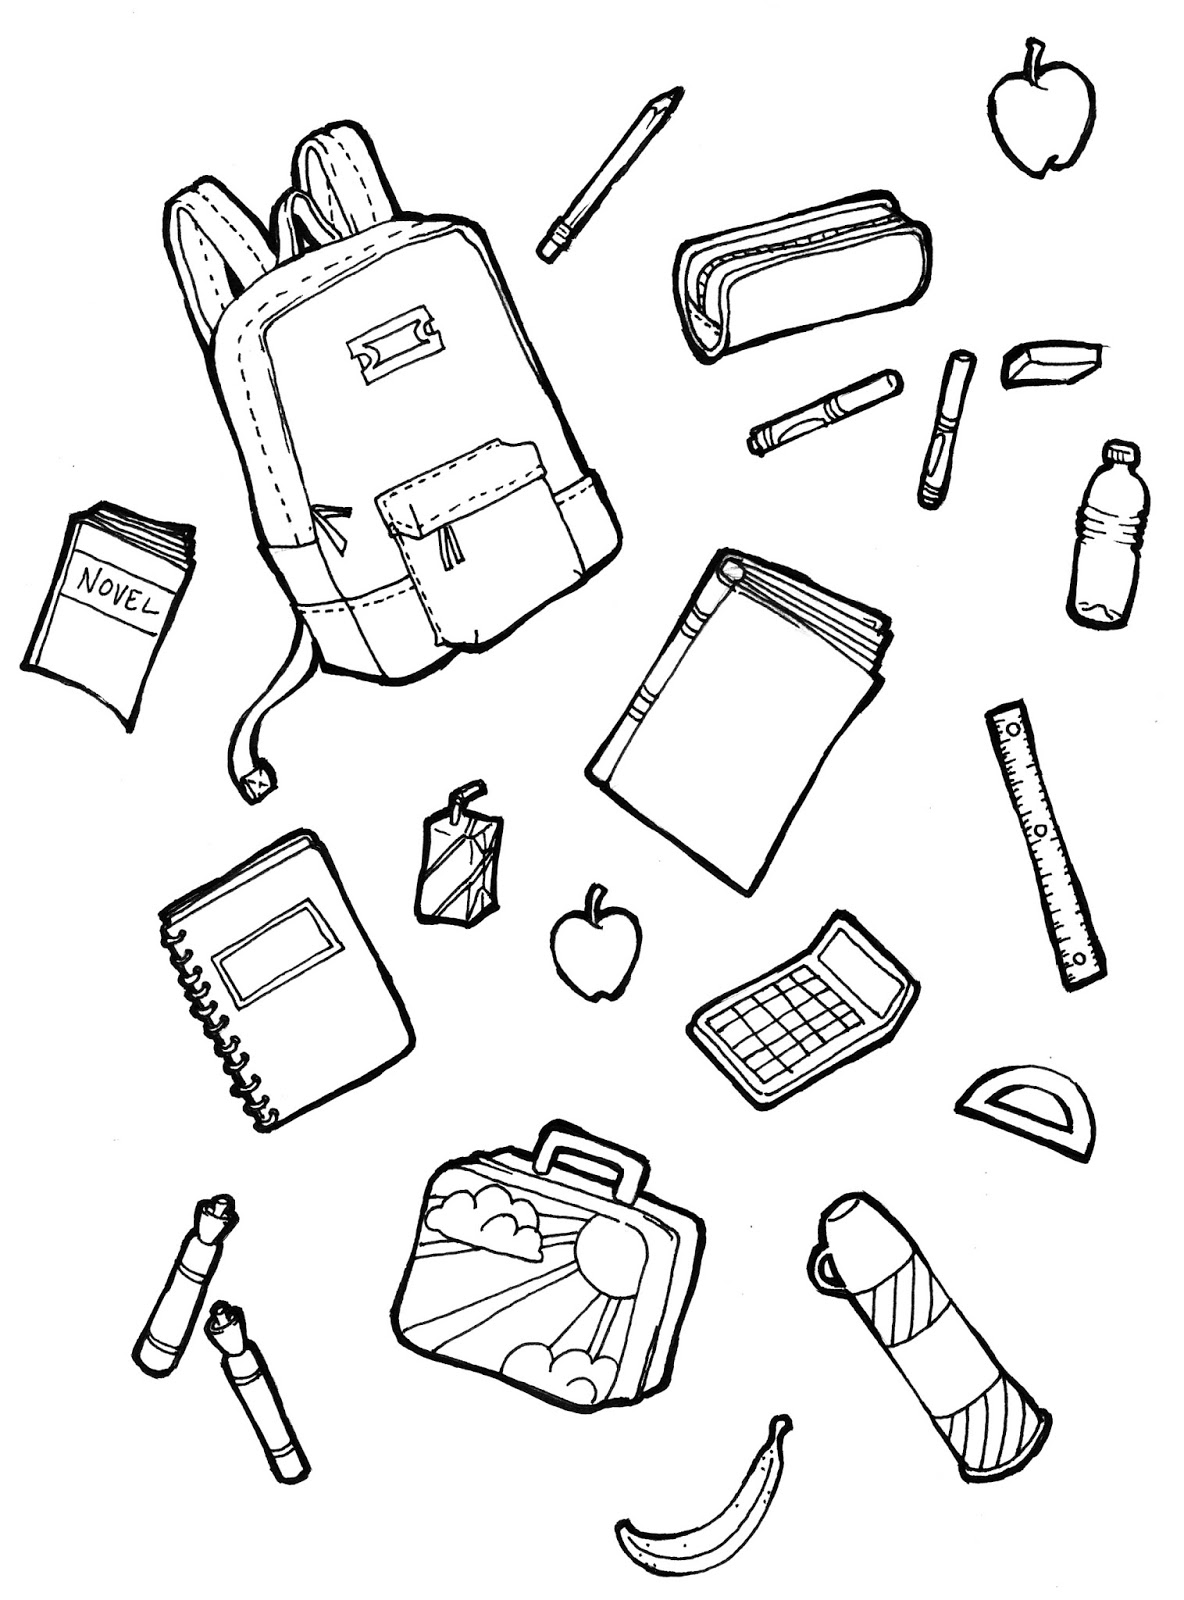 Marker Clipart School Related